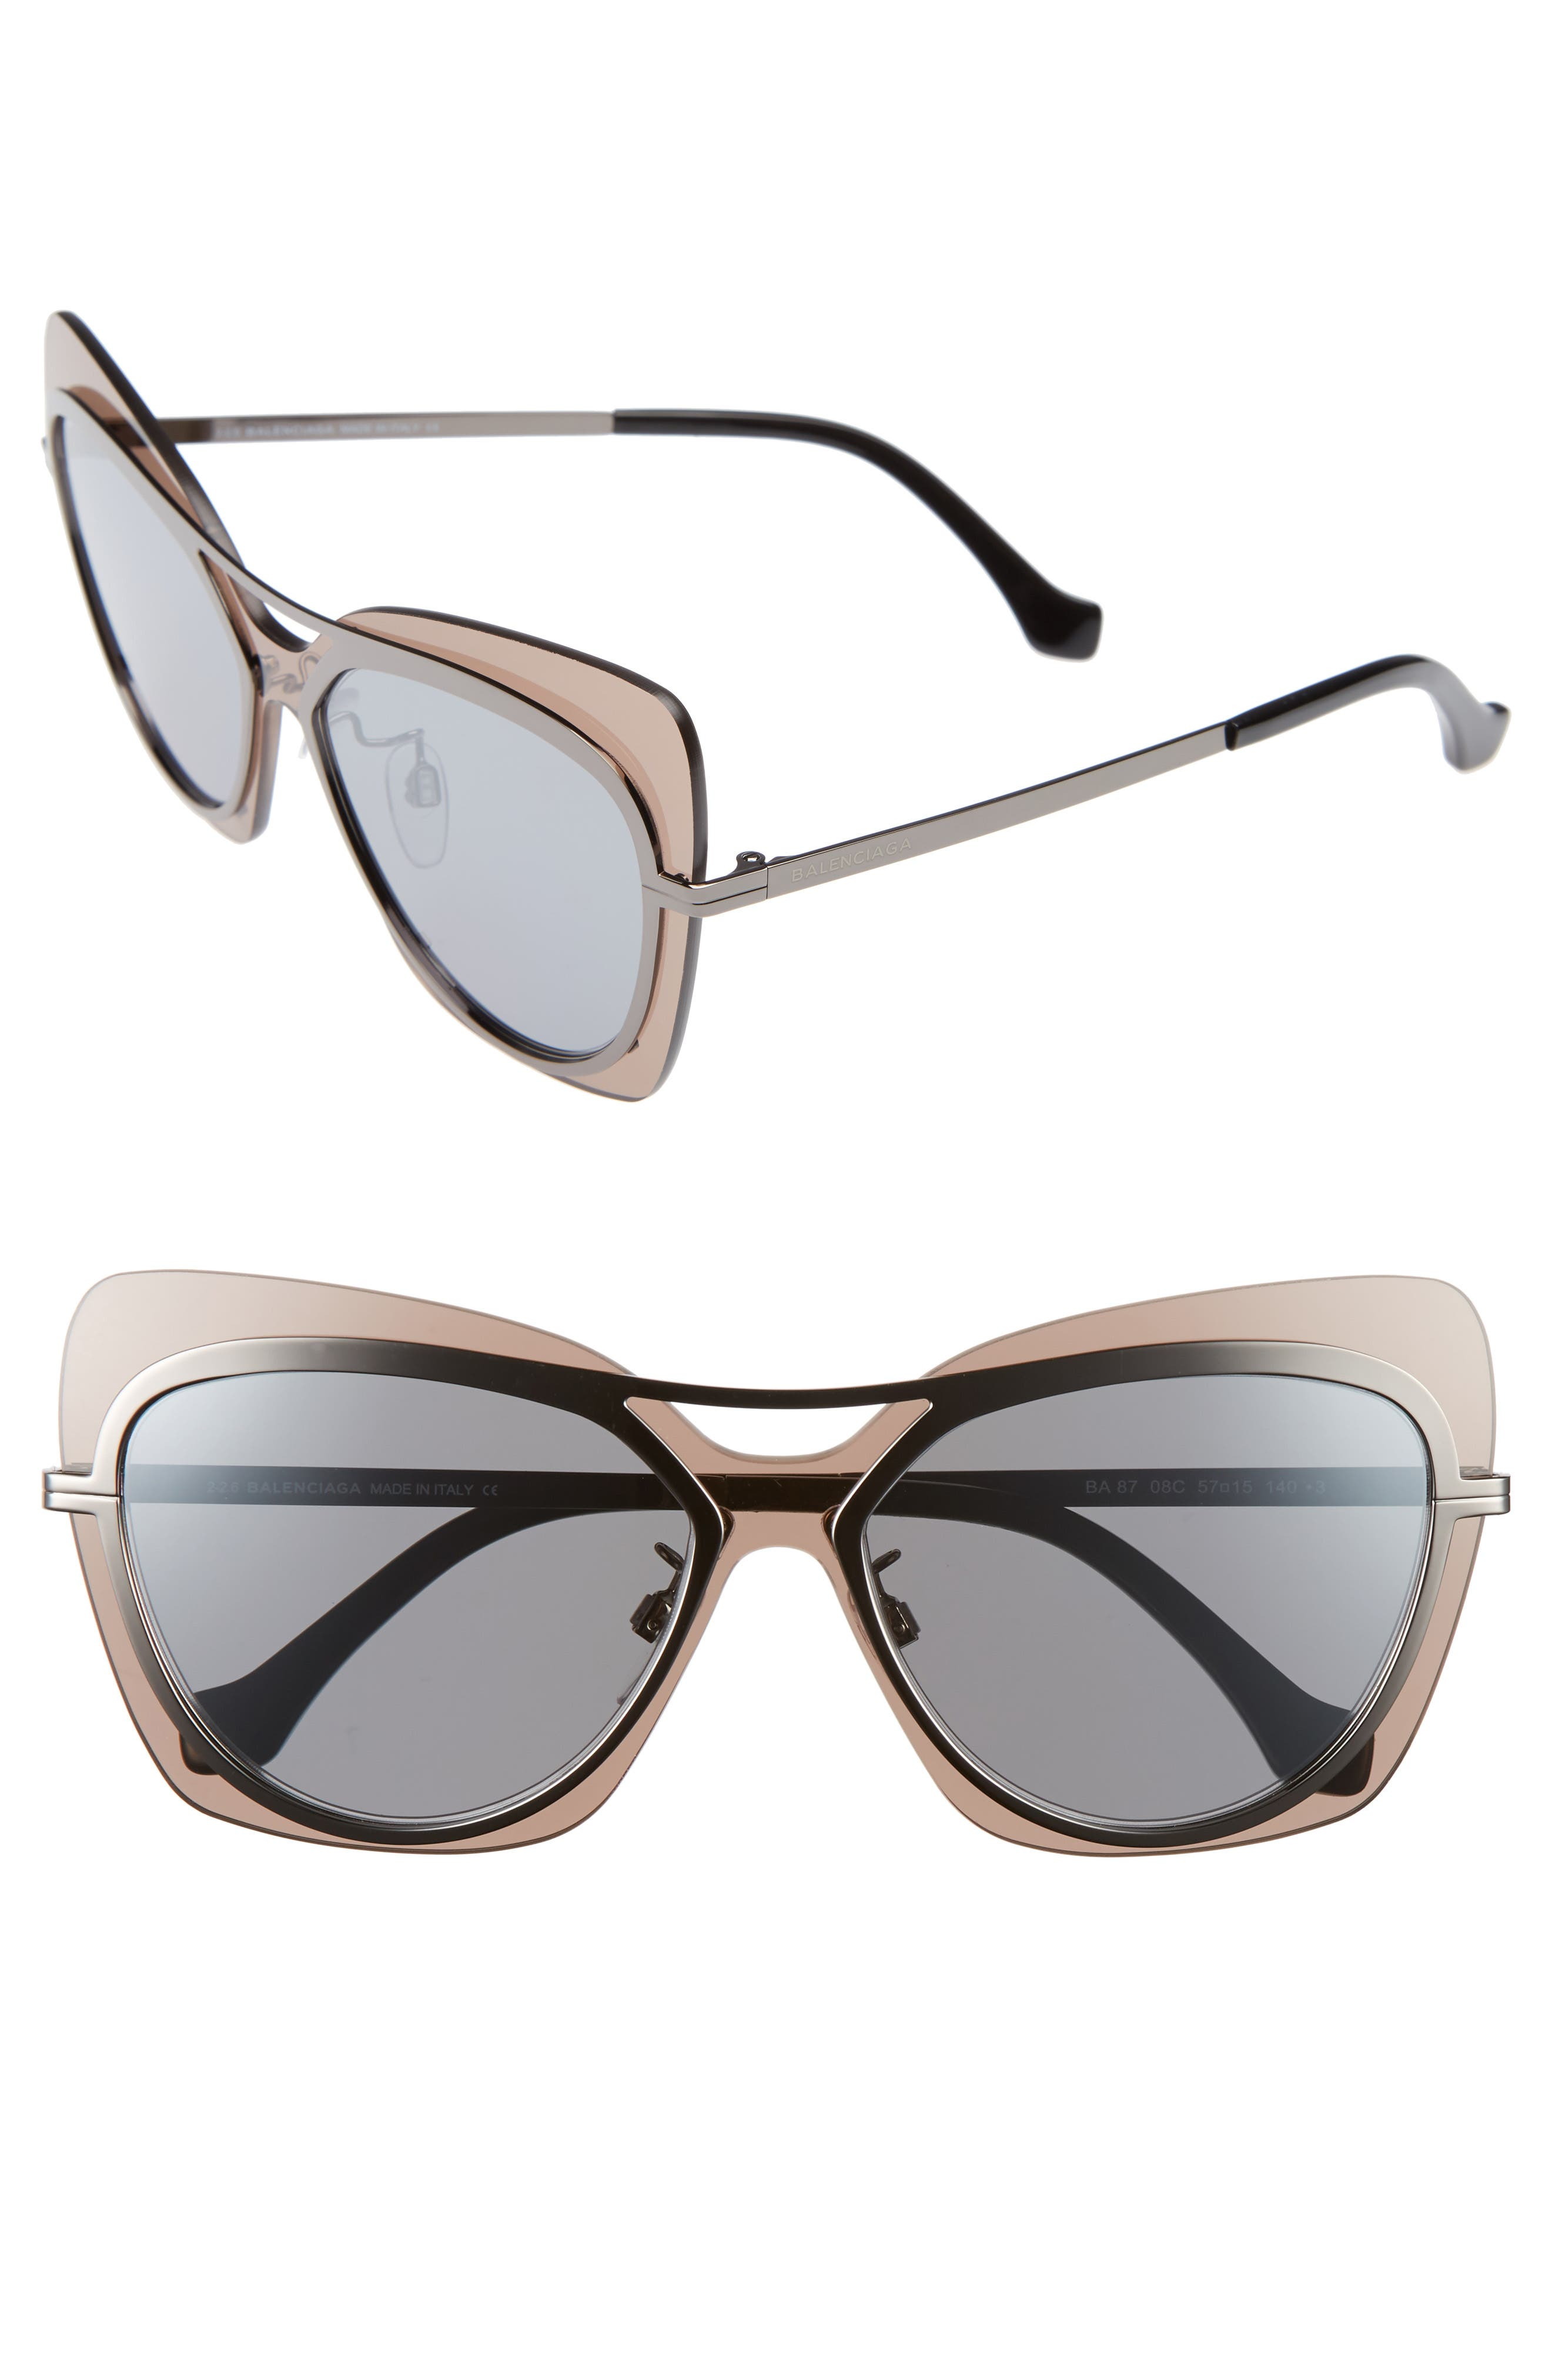 57mm Layered Butterfly Sunglasses,                             Main thumbnail 1, color,                             020